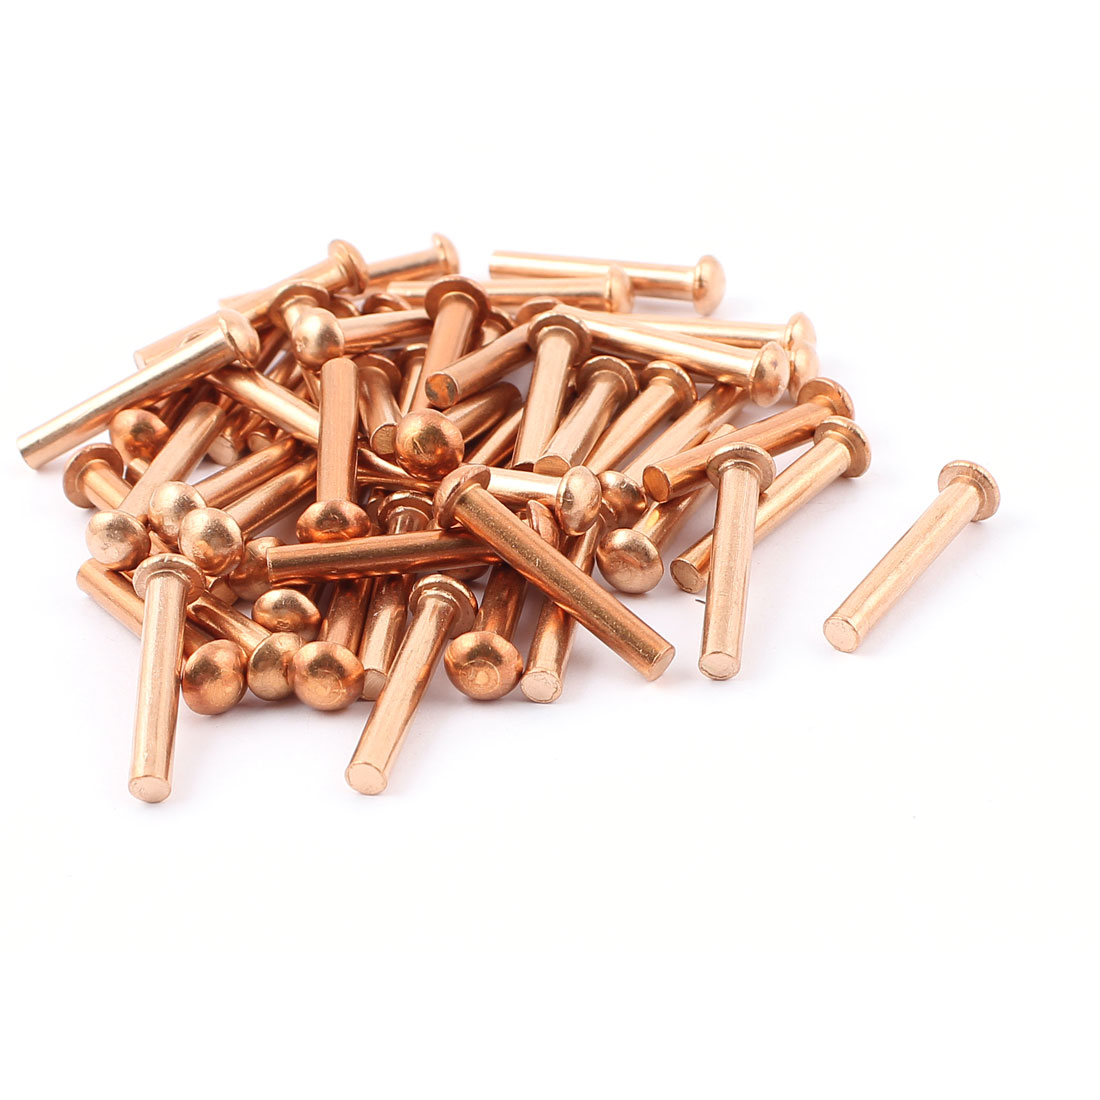 "50 Pcs 5/32"" x 1"" Round Head Copper Solid Rivets Fasteners"